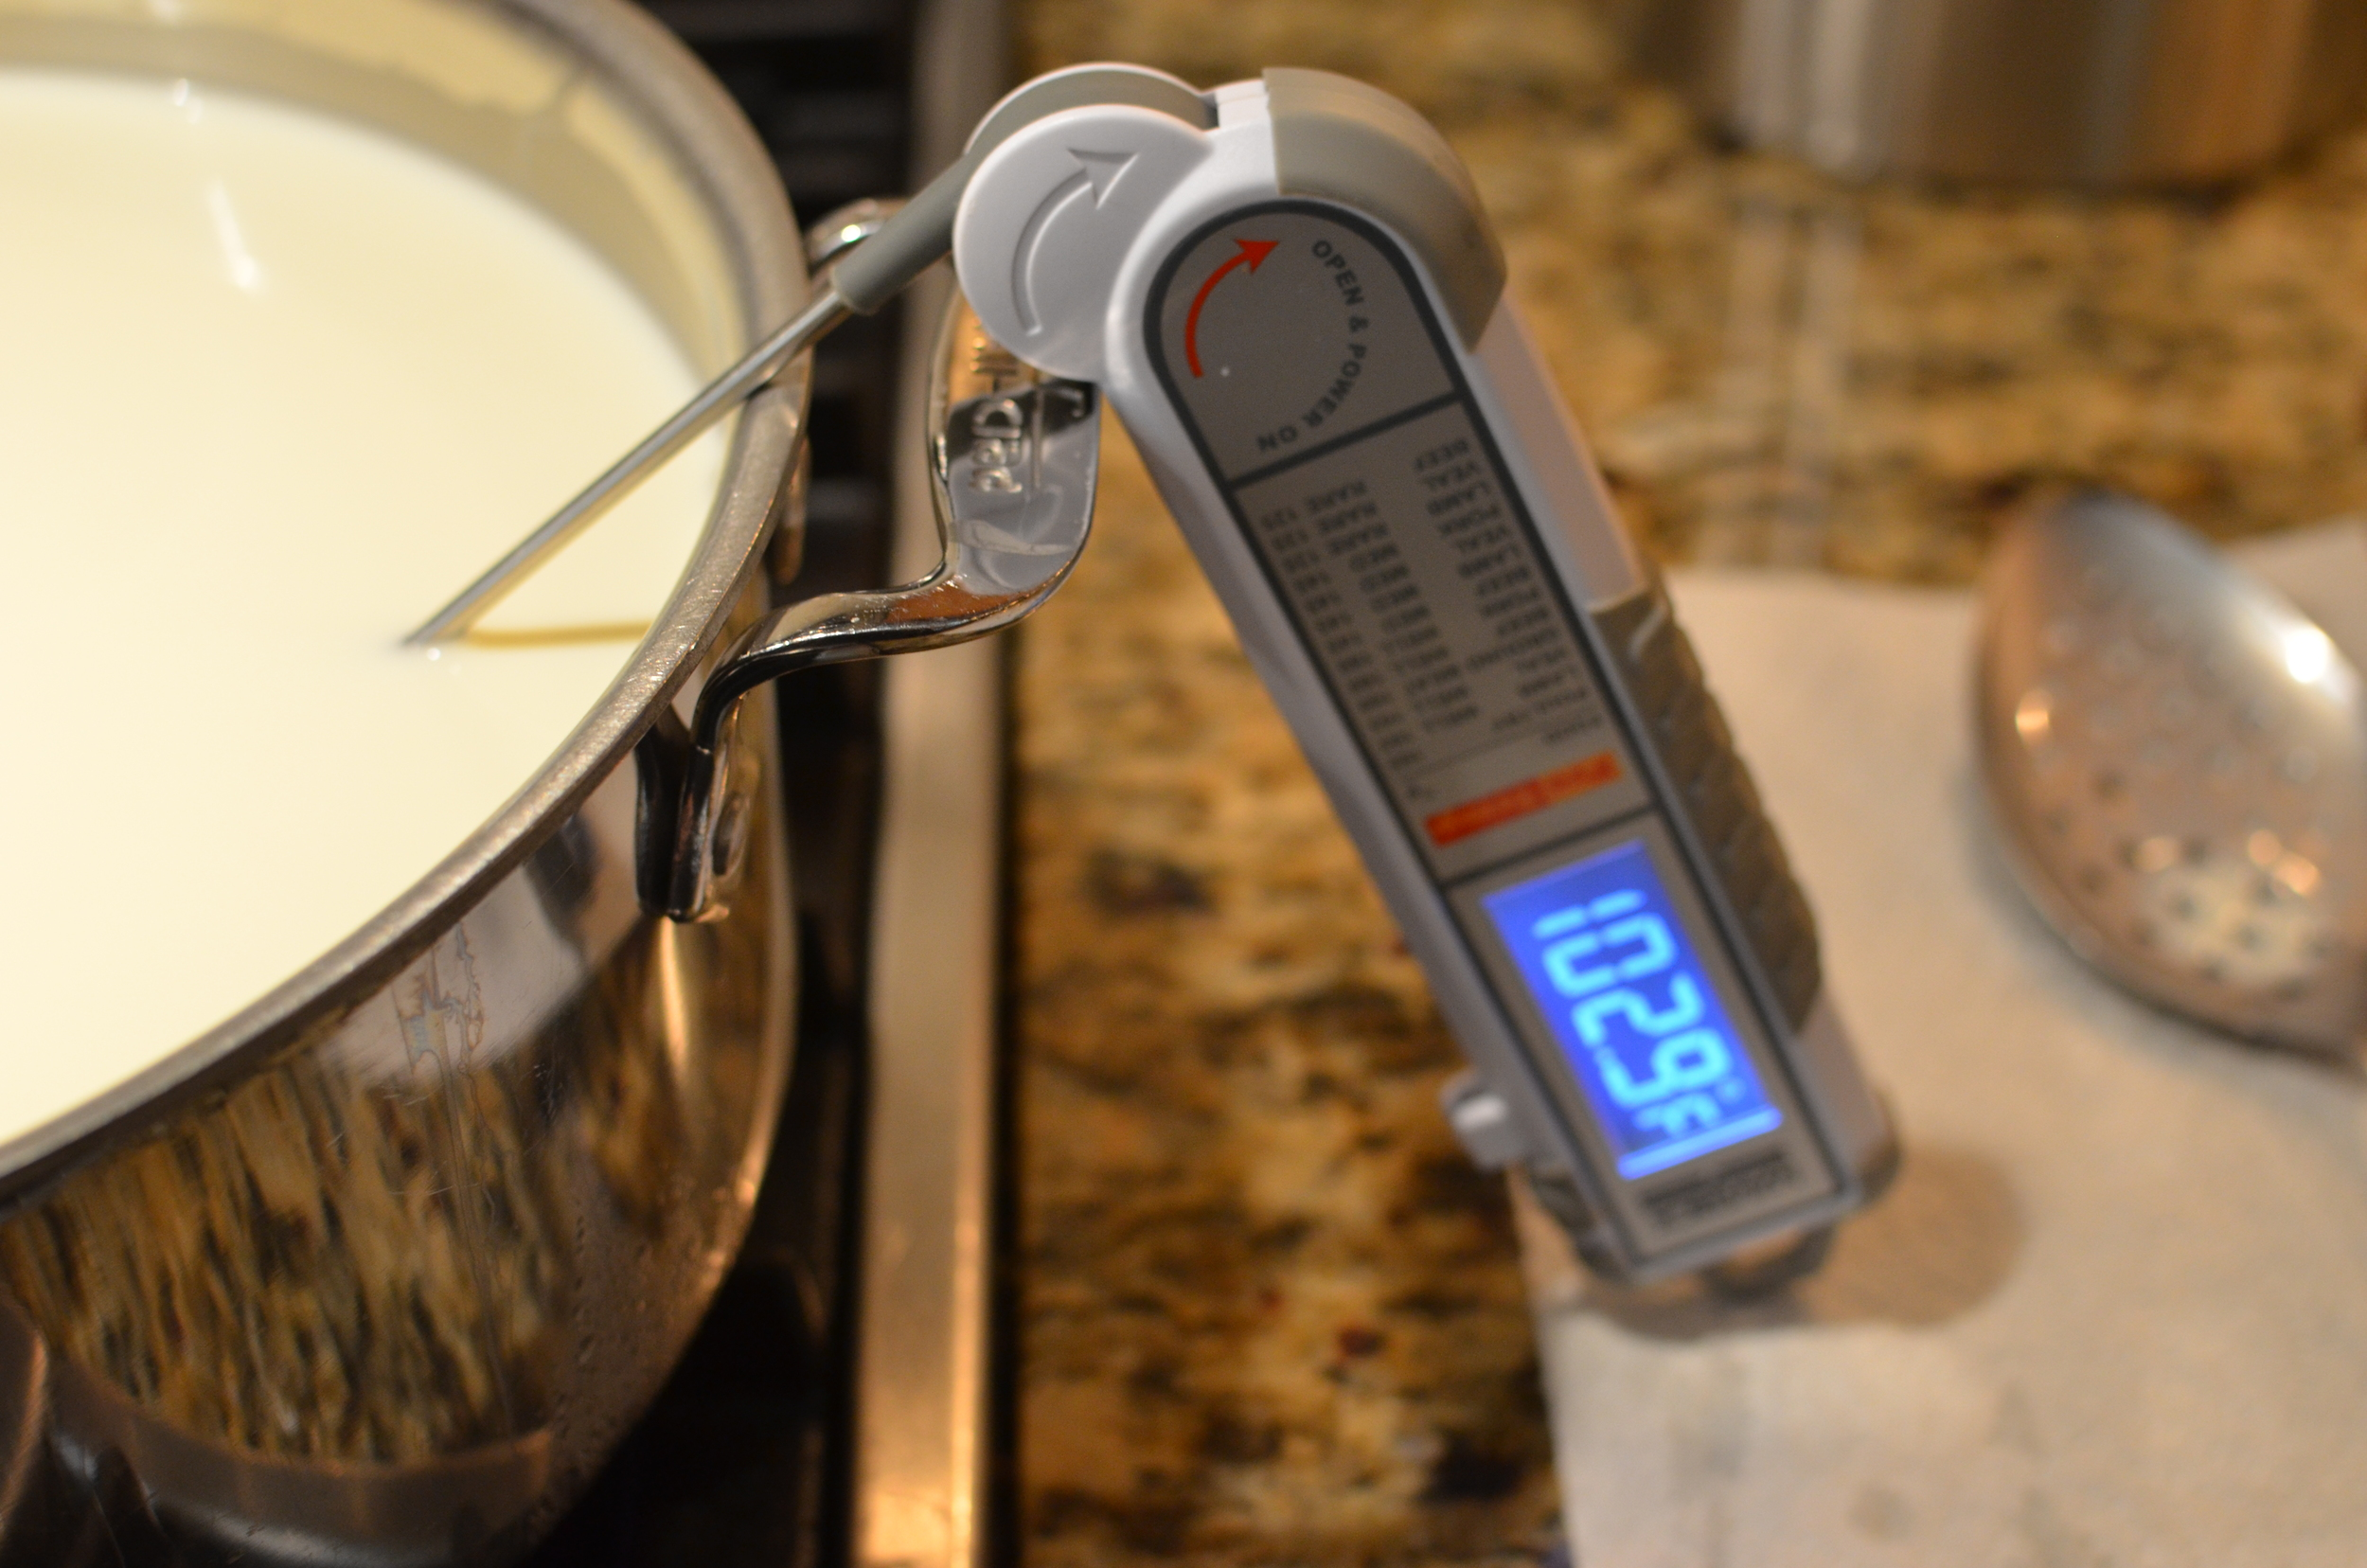 Use a digital thermometer to monitor the temperature of the milk and cream. Make sure the probe doesn't rest against the bottom or sides of the pan.